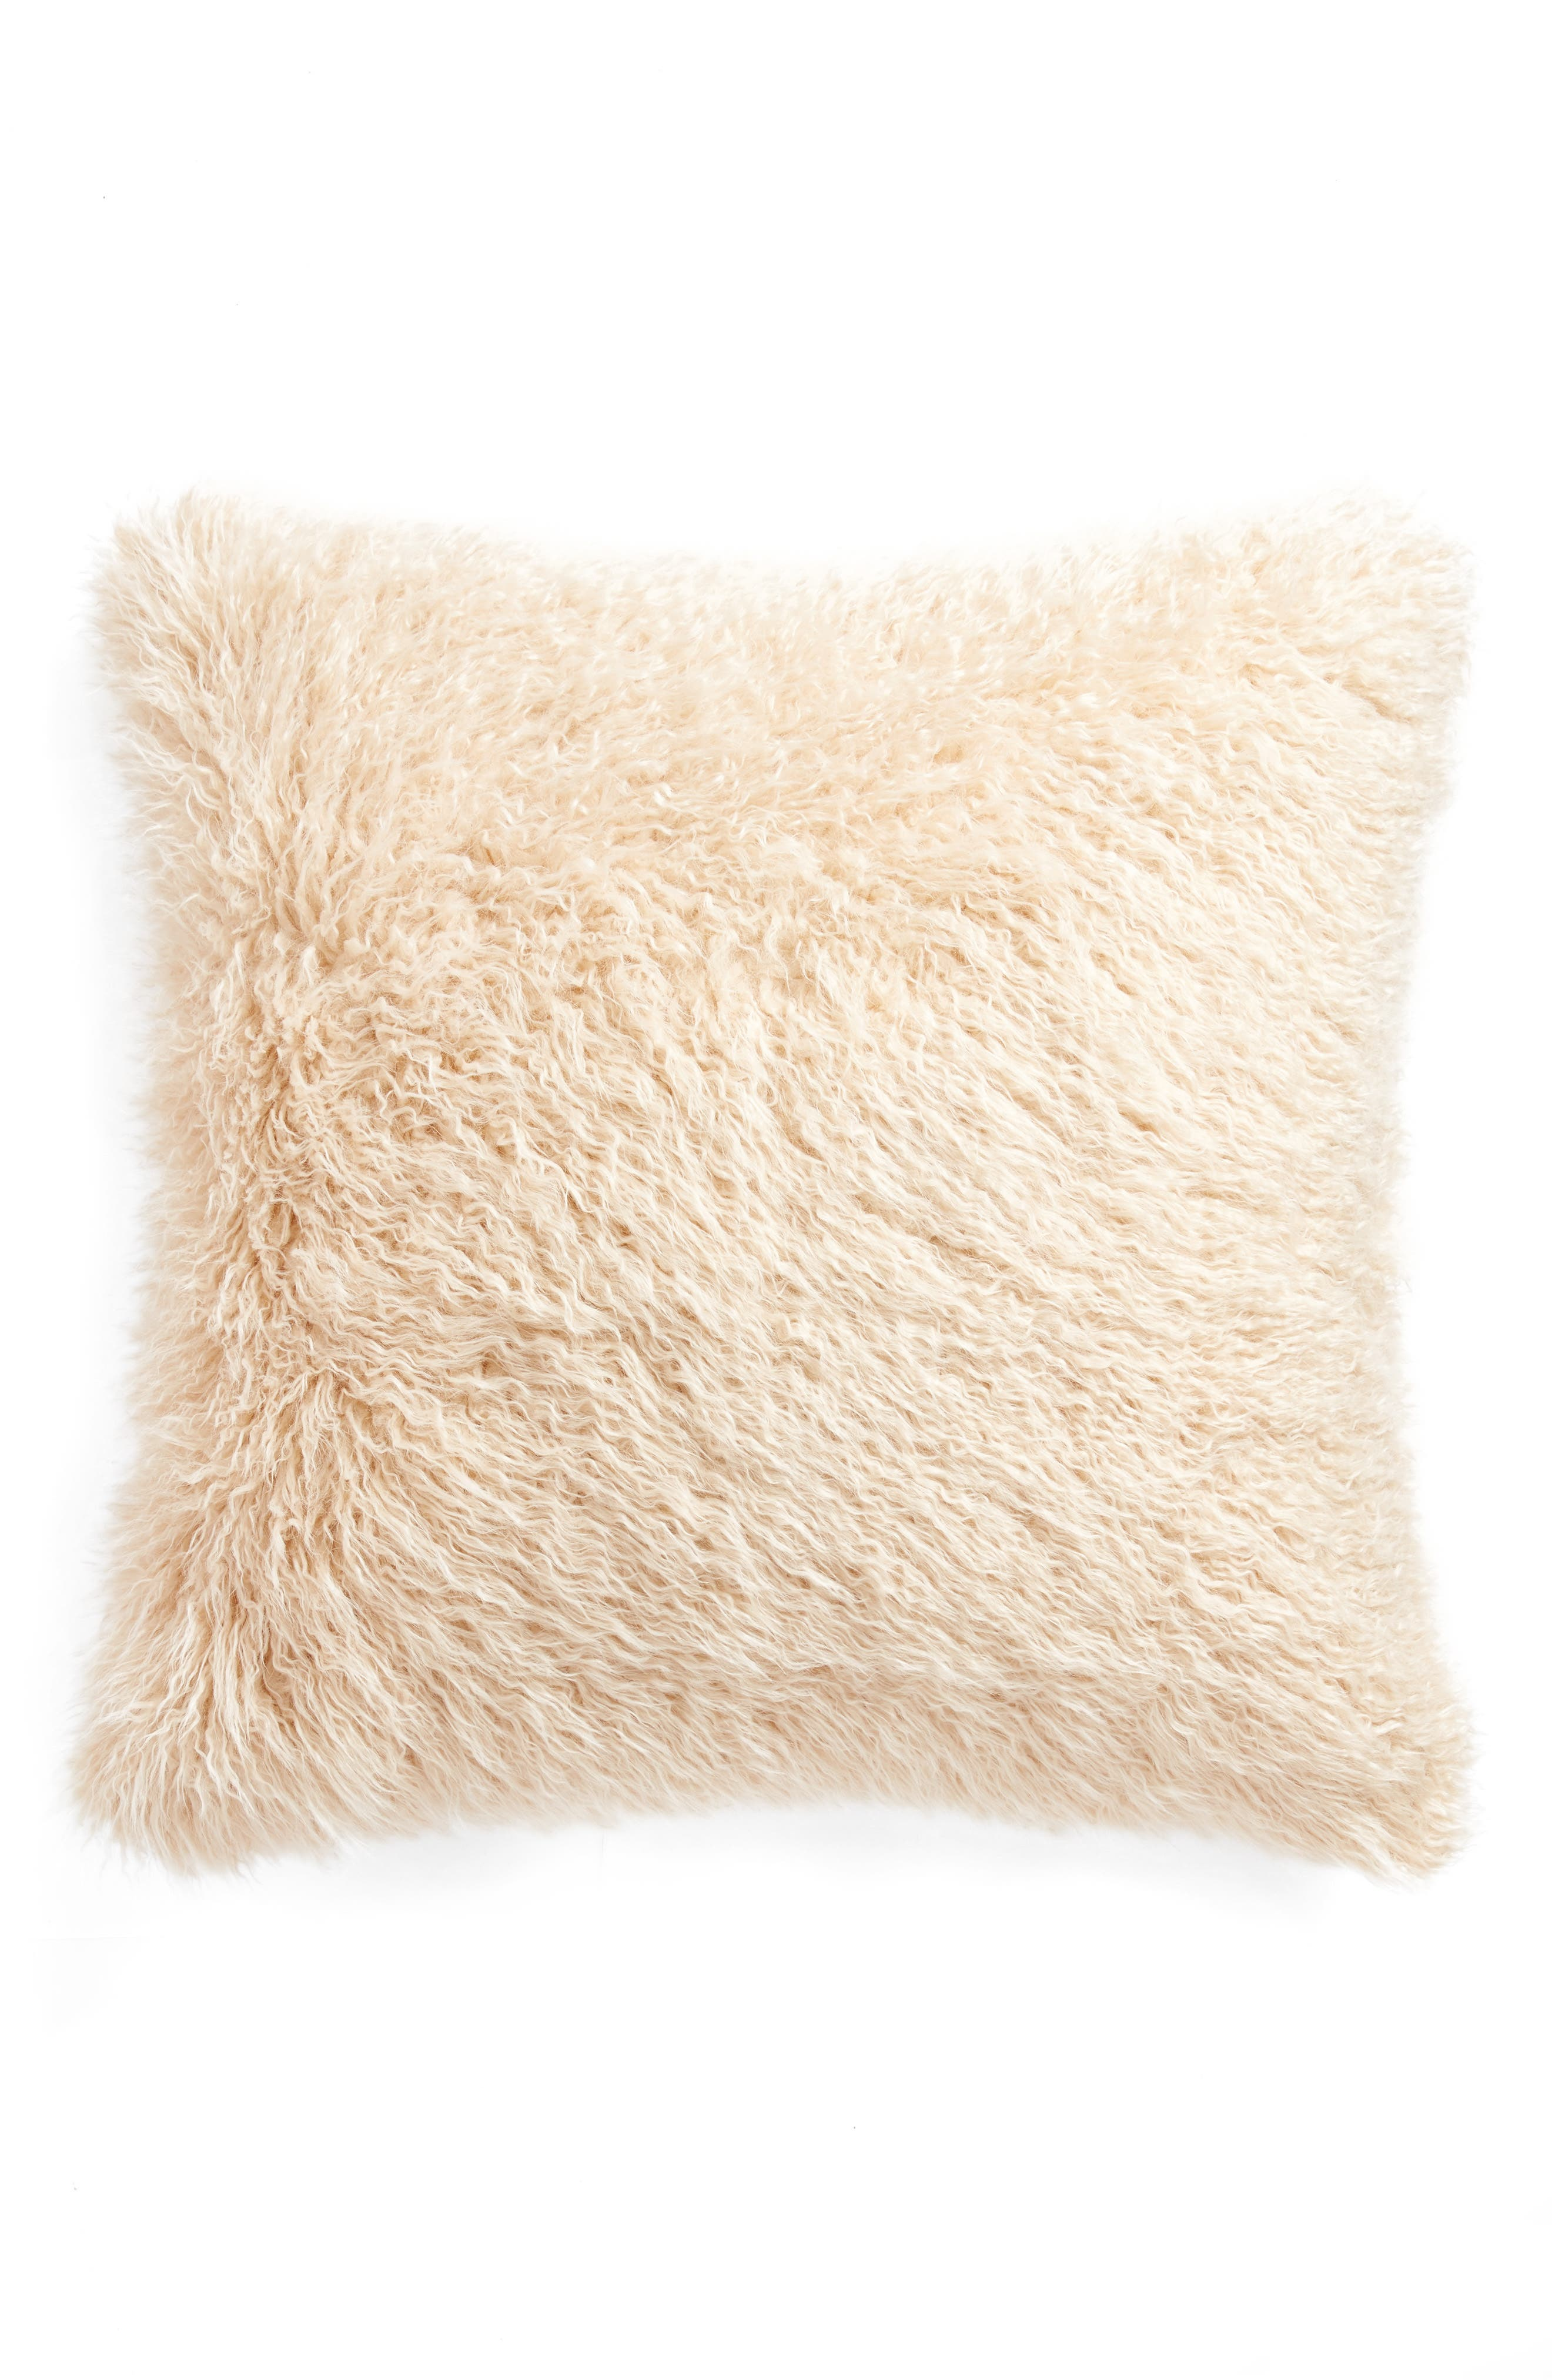 Curly Faux Fur Pillow,                             Main thumbnail 1, color,                             Beige Beach